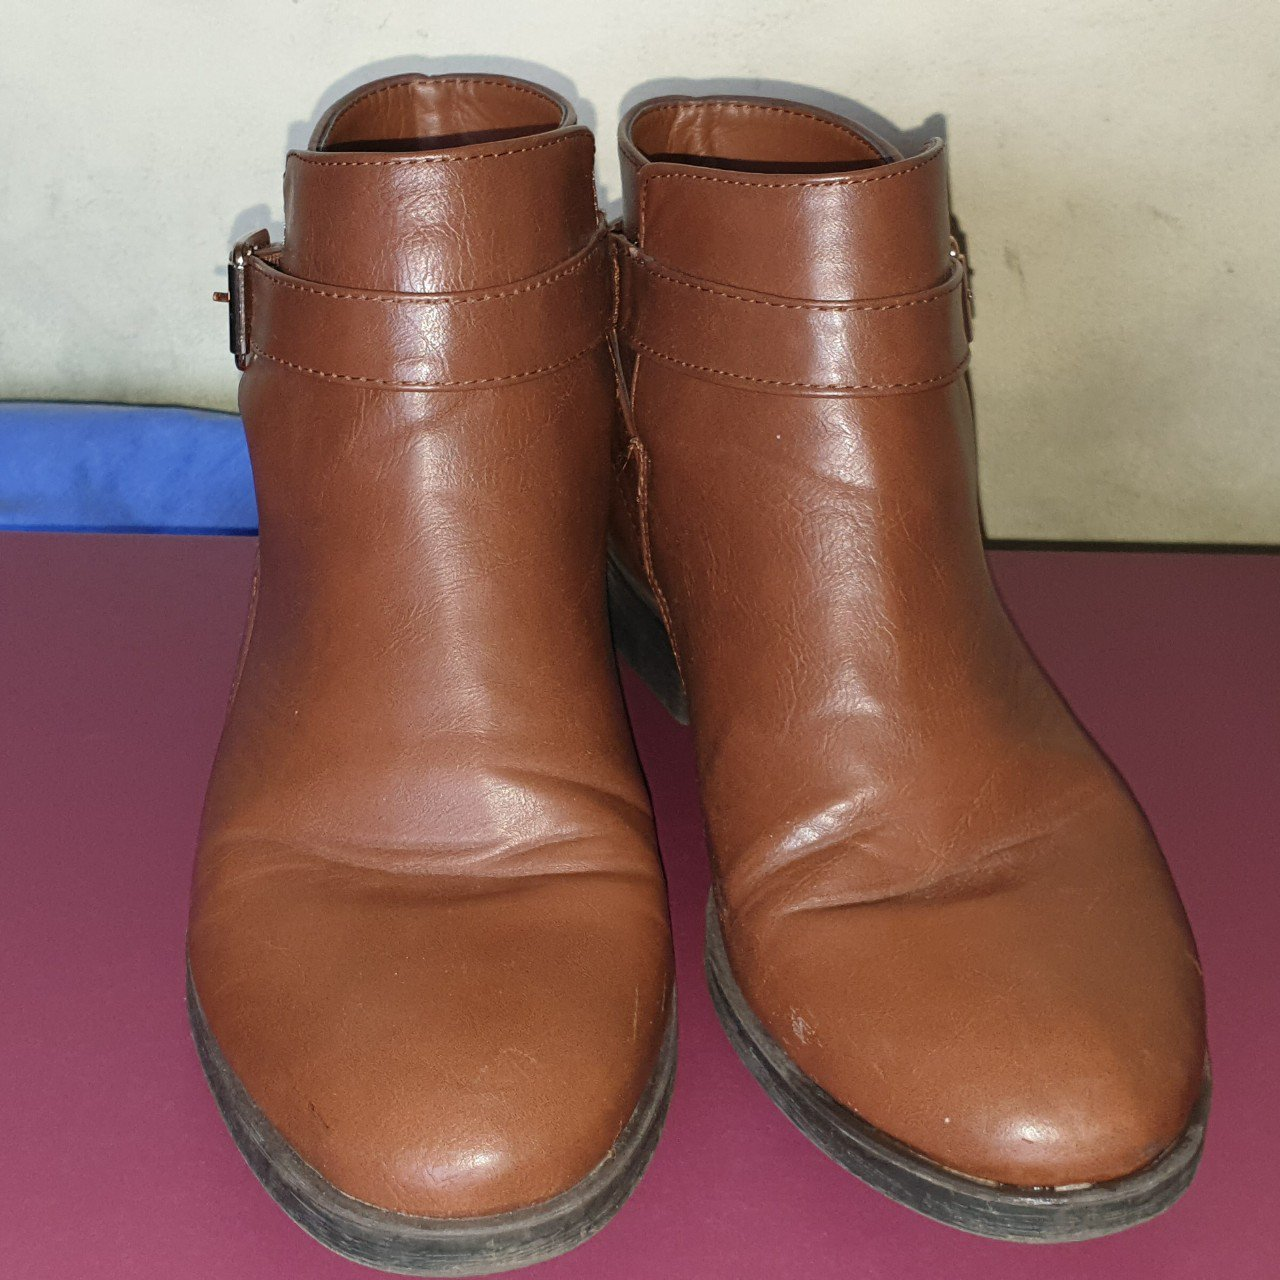 632781f2fc670 @carys203. 26 days ago. Llanelli Rural, GB. Brown/Tan coloured ankle boots